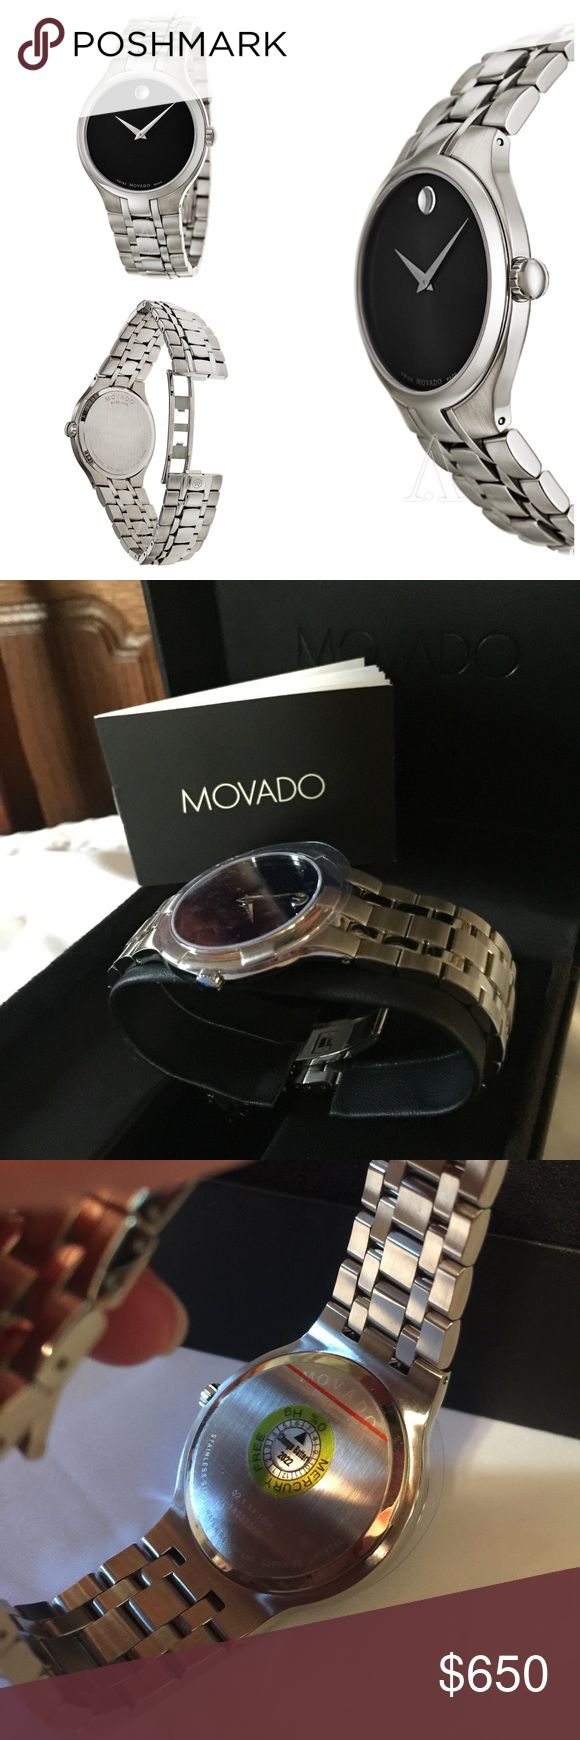 Movado Men's Collection Watch Brand new authentic movado men's watch. Round shape stainless steel. Sapphire crystal scratch resistant and 100 m water resist. Silver tone movado swiss watch. This is a beautiful men's watch. Perfect gift for any occasion. Box n booklet provided. Thank you. Let me know if you're interested. SELLING ONLY🌹 Accessories Watches